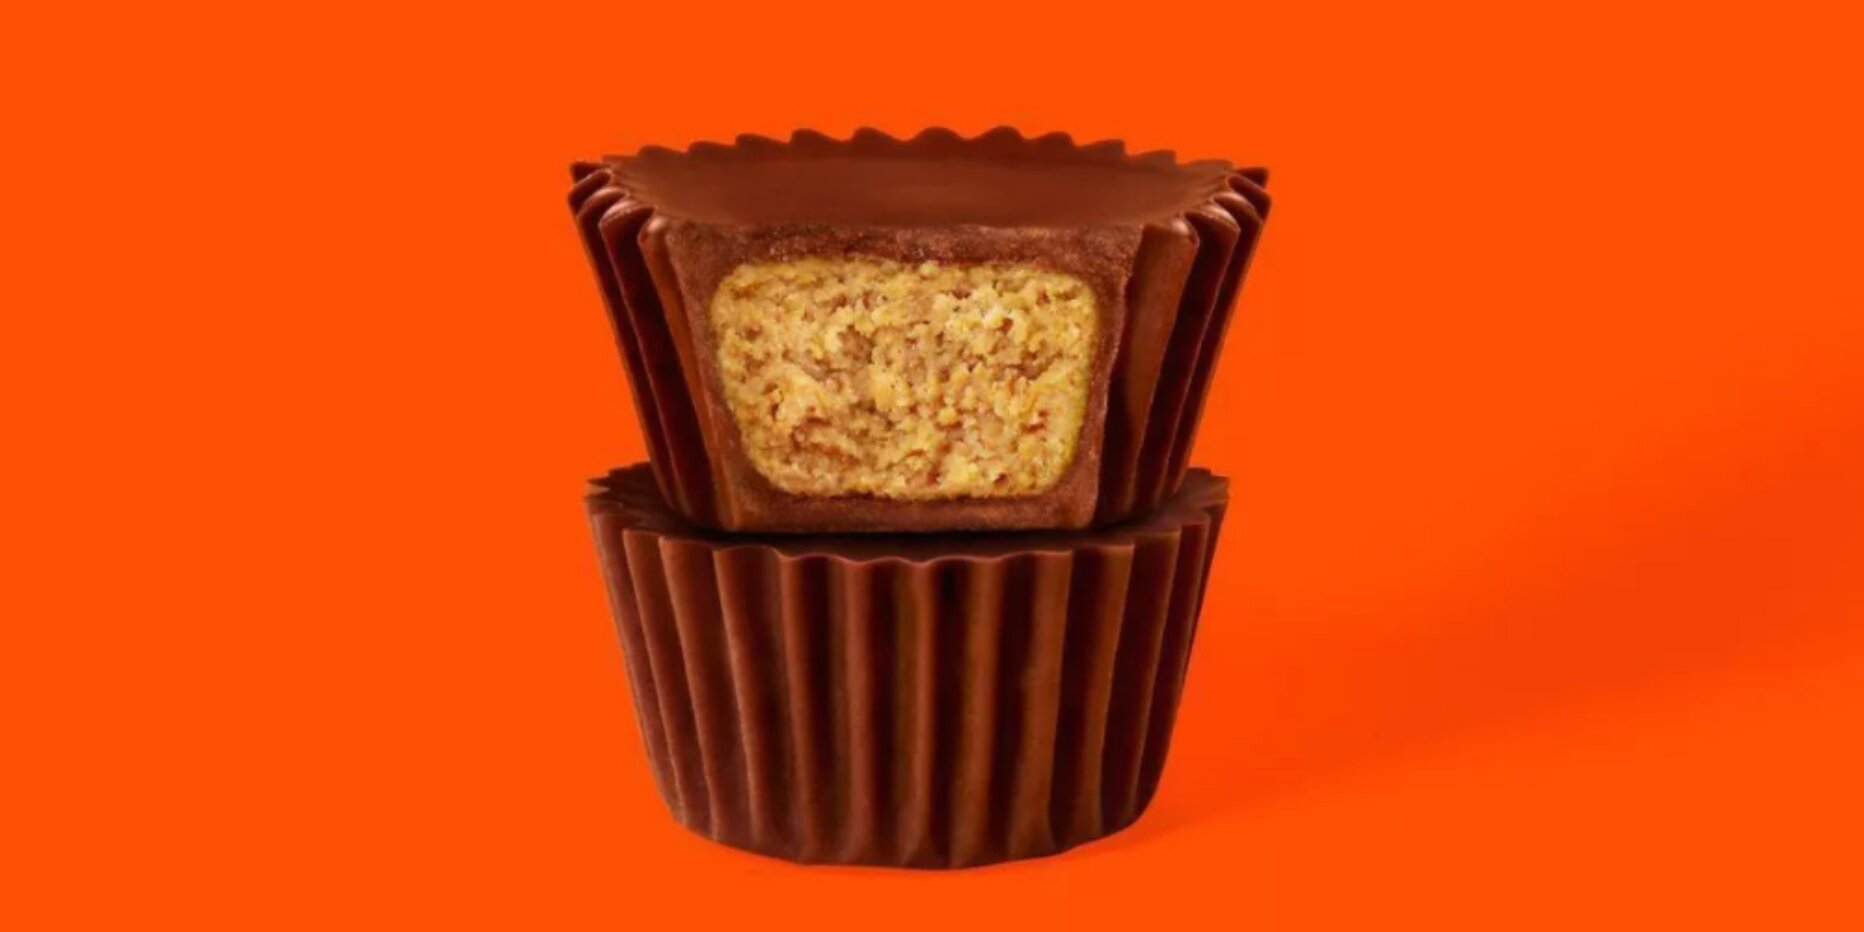 8 Things to Do with Those Reese's Mini Unwrapped Candies Besides Just Eating Them by the Handful